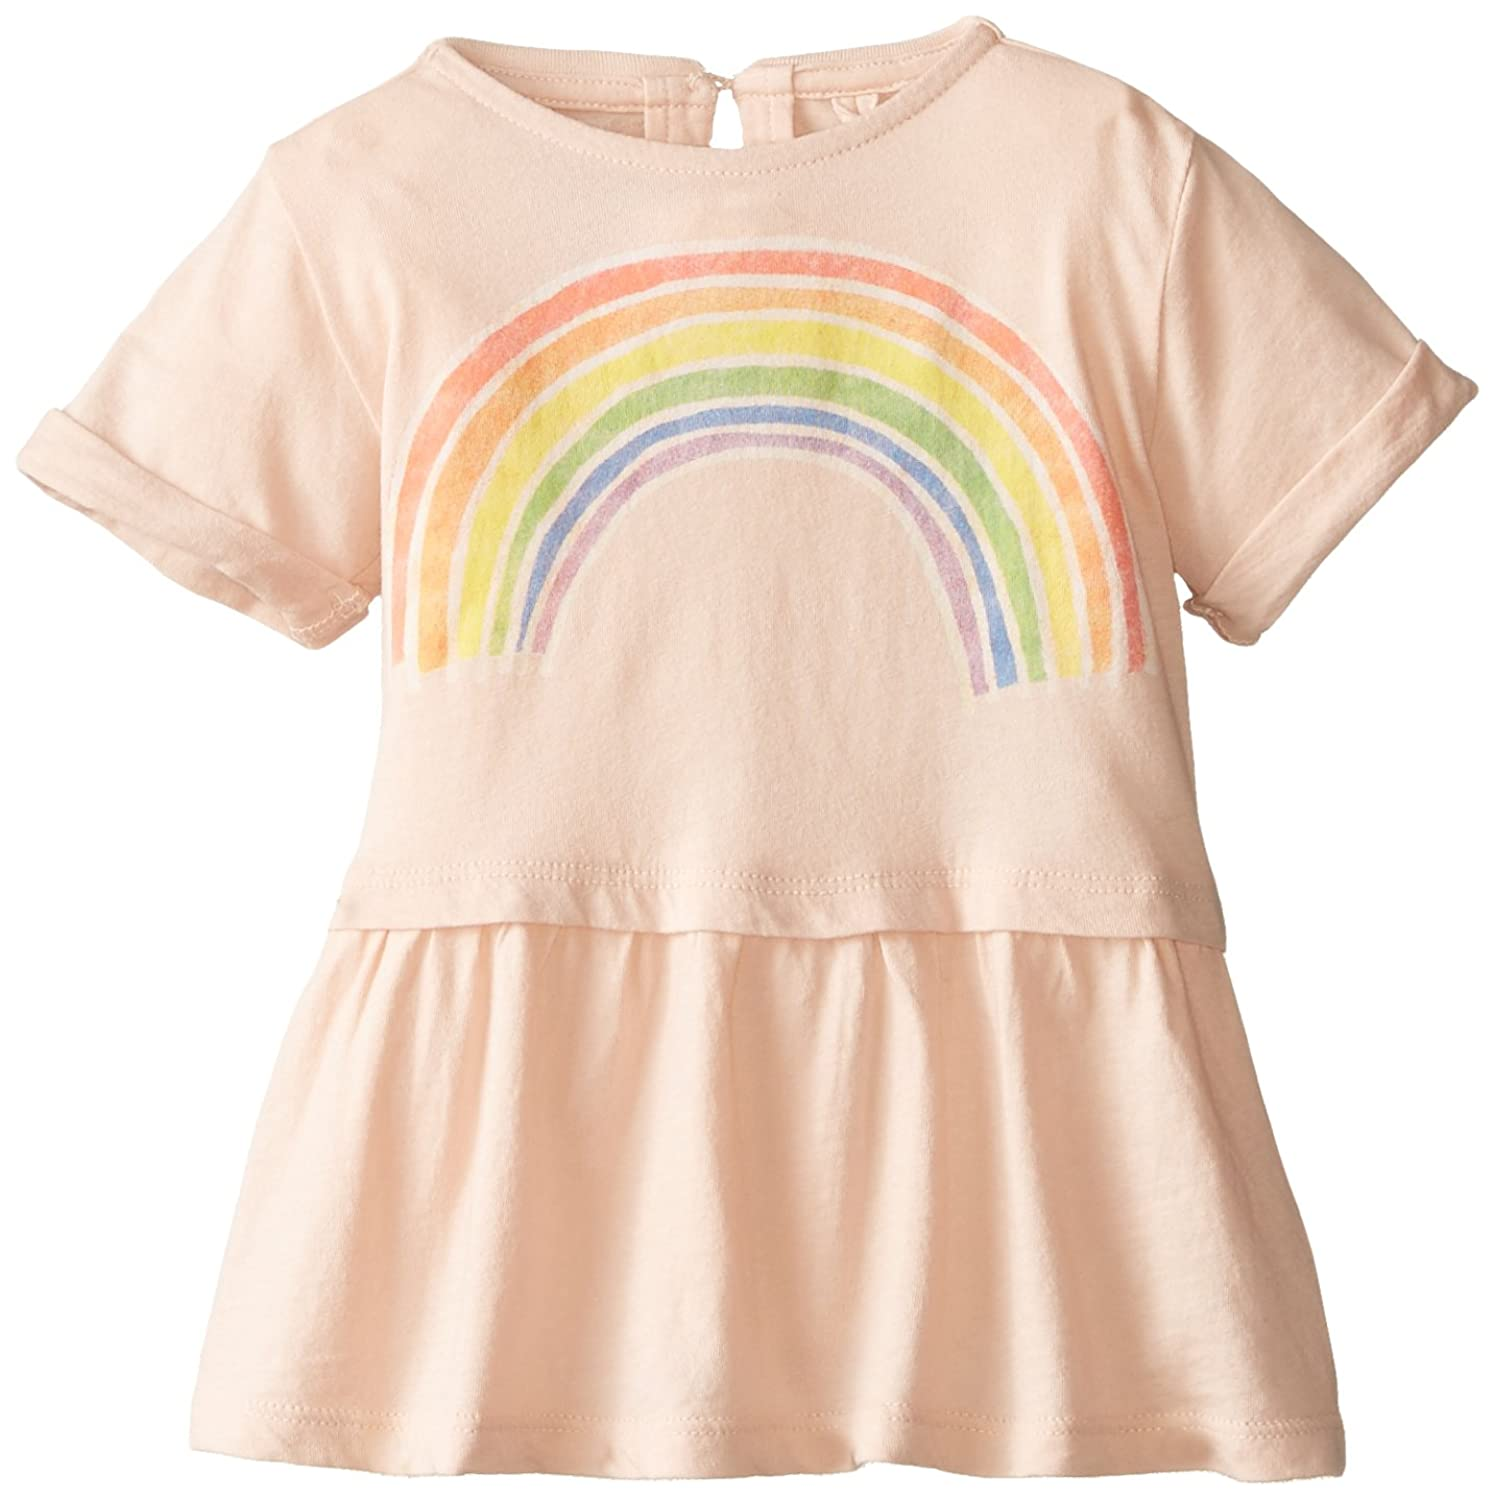 Stella McCartney Baby Girls' Jess Rainbow Dress stella mccartney 1240865